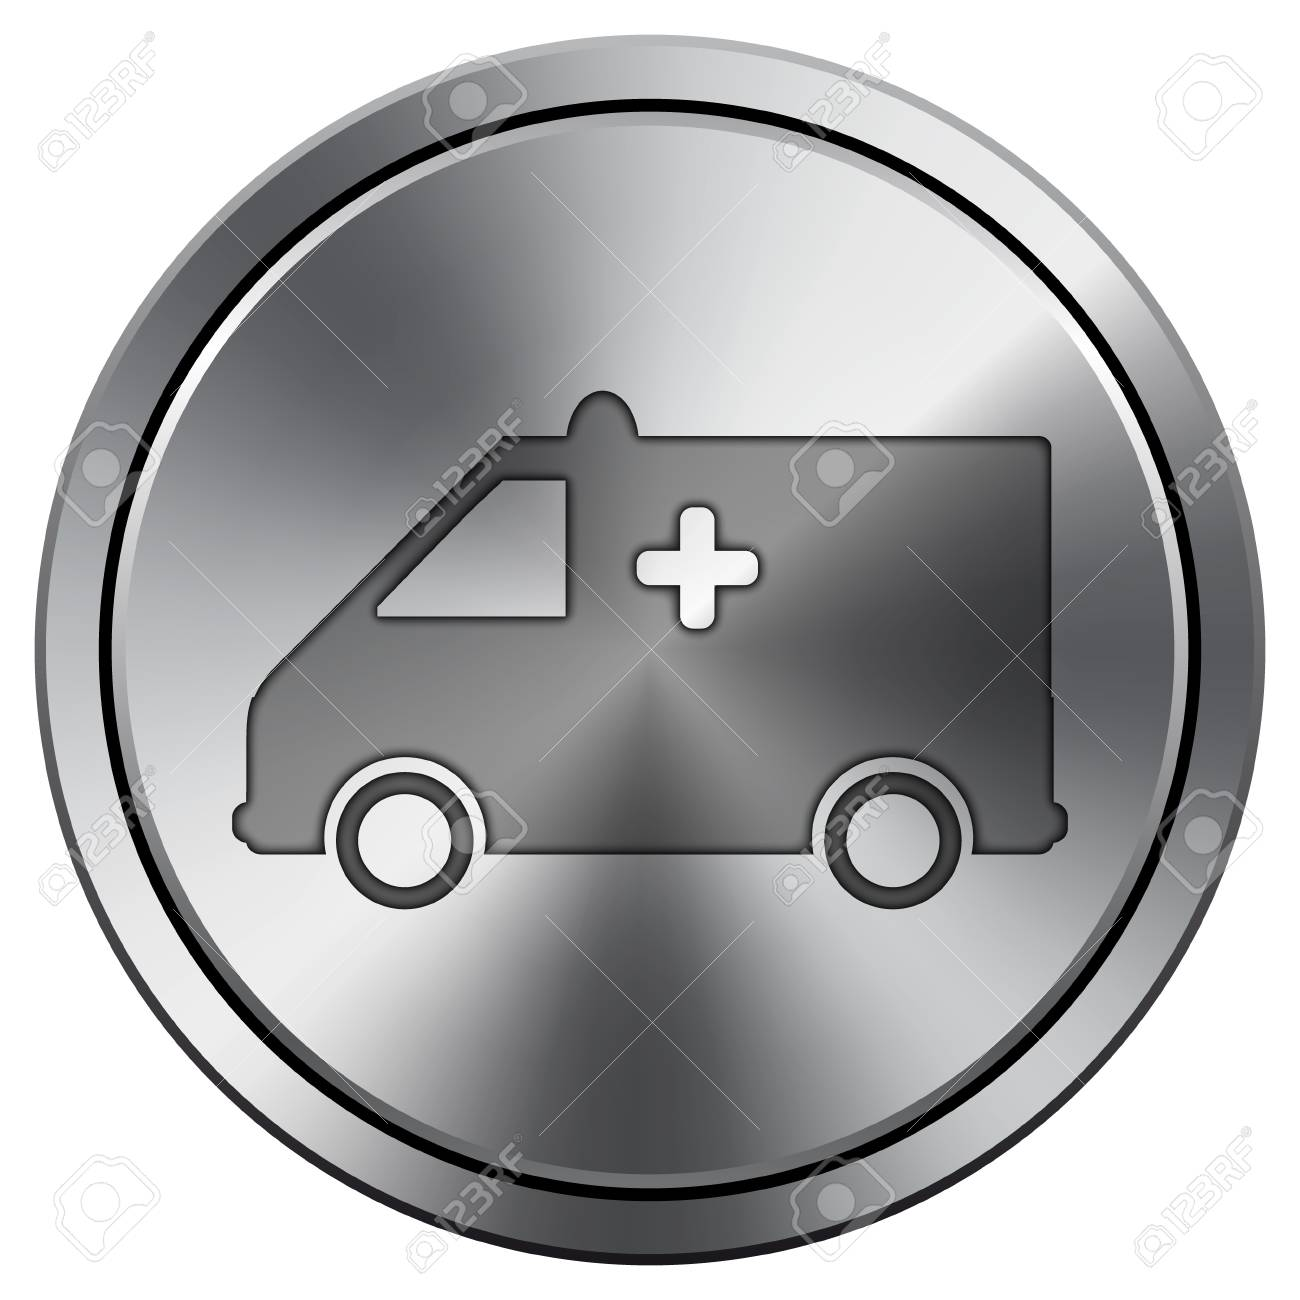 Metallic icon with carved design Stock Photo - 21387215